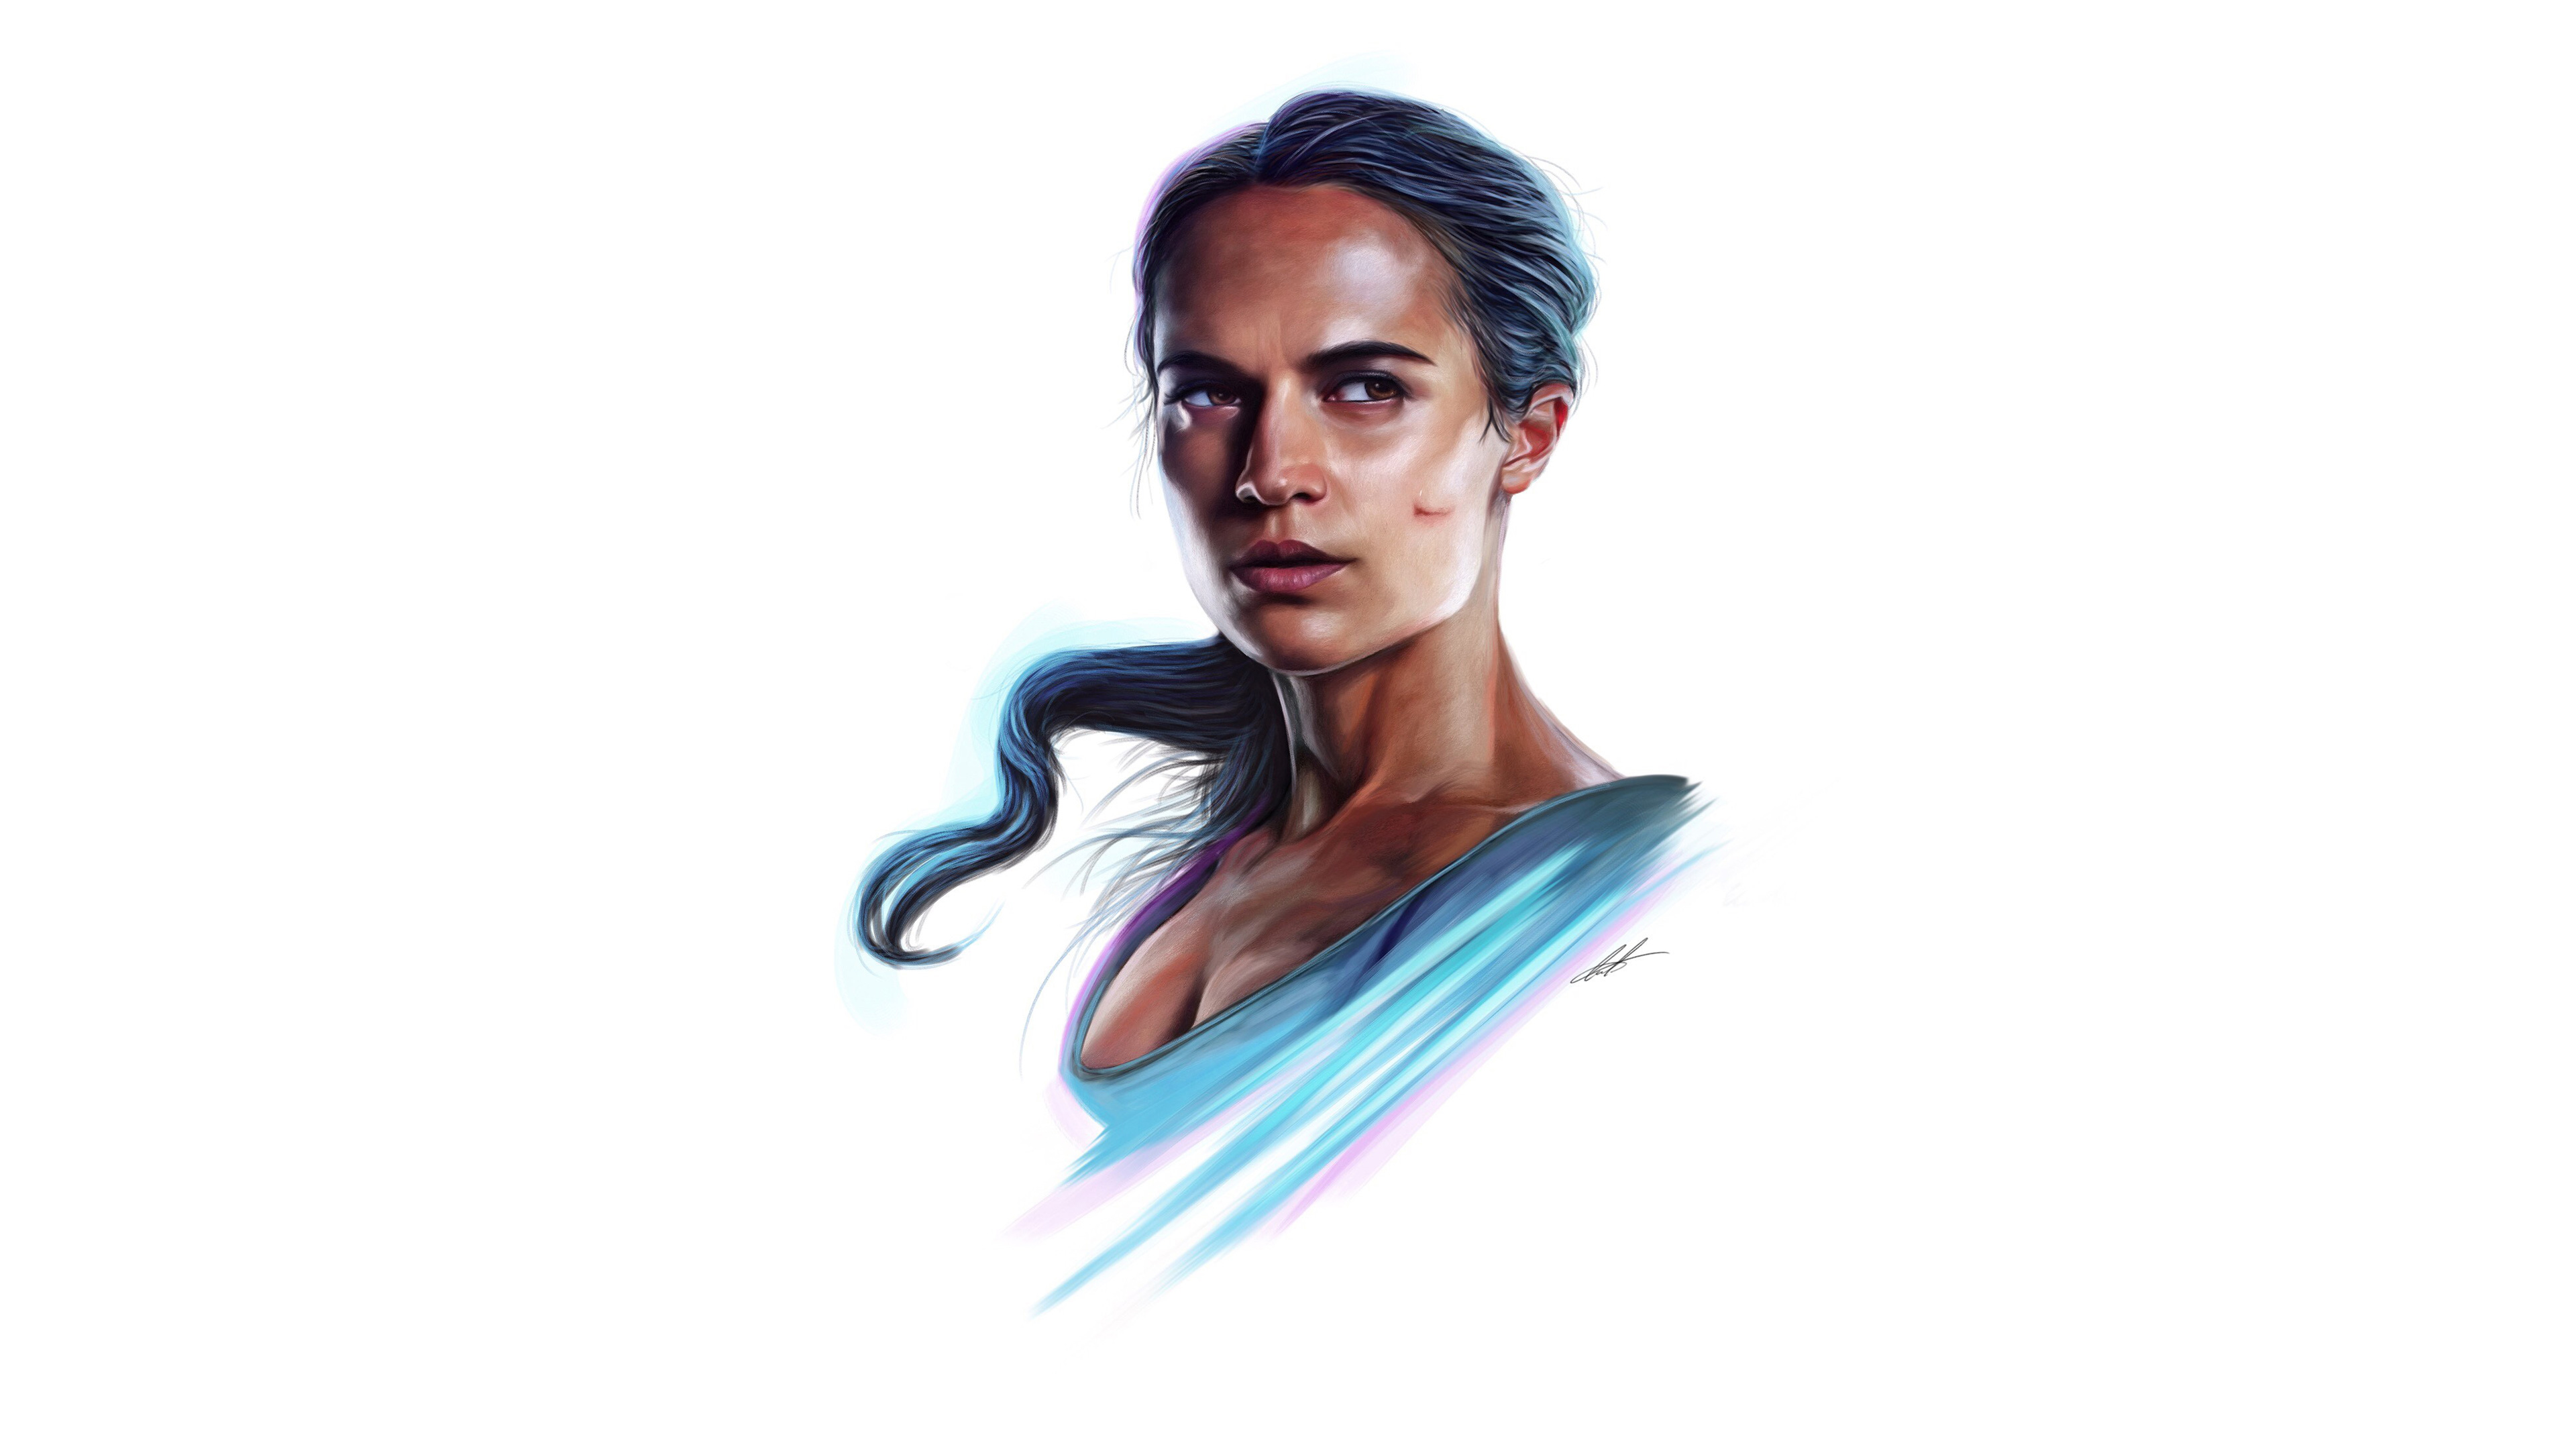 2932x2932 Pubg Android Game 4k Ipad Pro Retina Display Hd: Alicia Vikander Lara Croft 4k, HD Artist, 4k Wallpapers